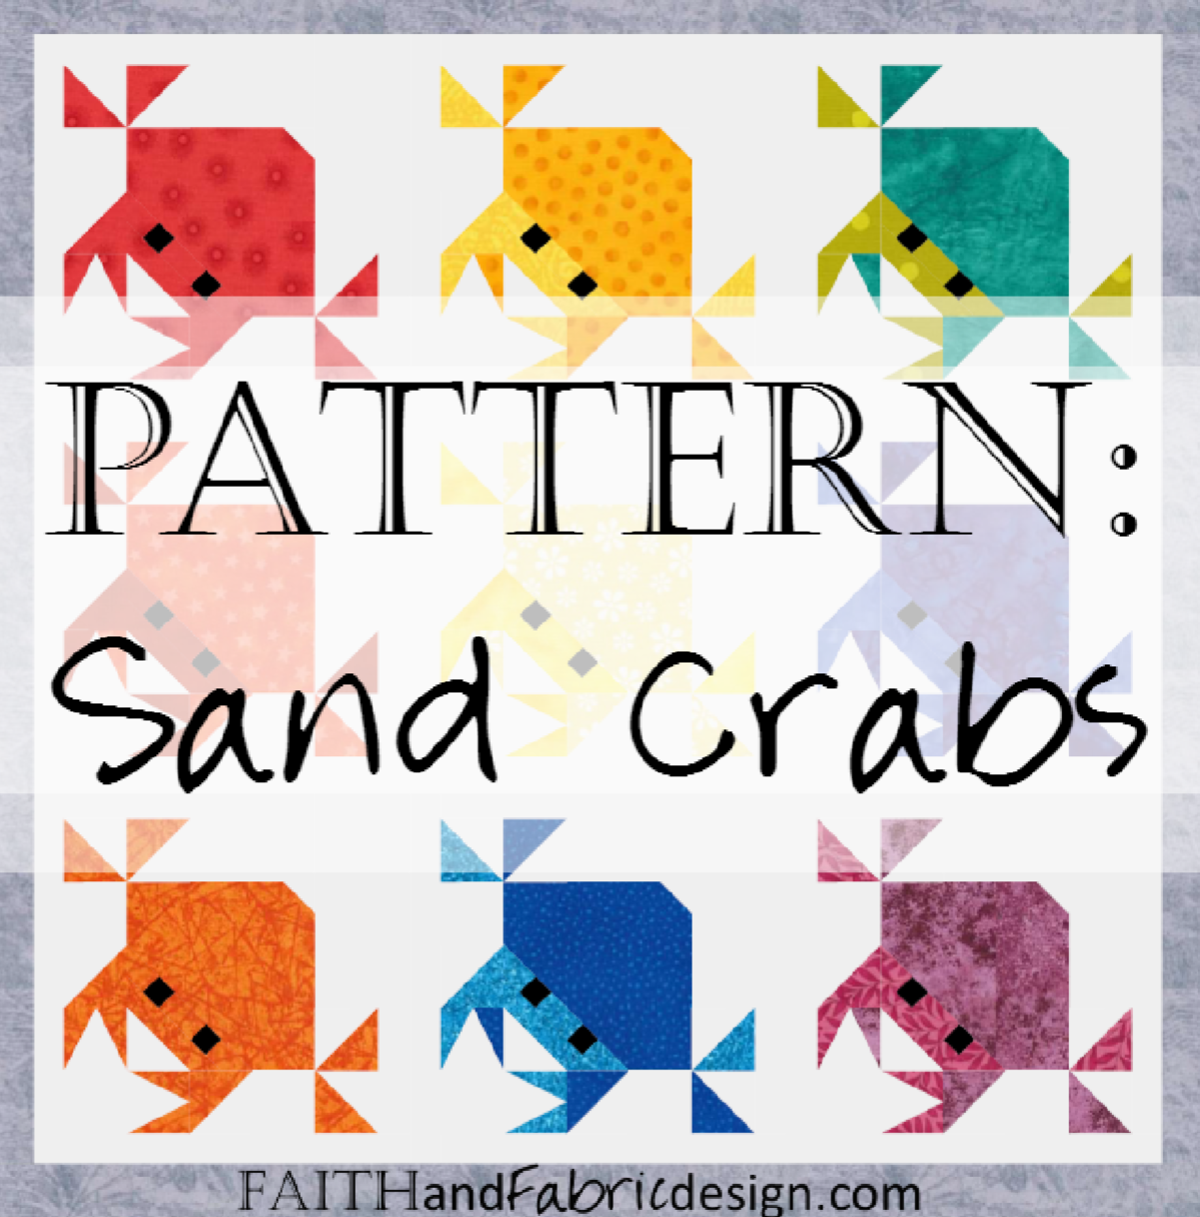 Sand crabs feeling crabby quilt pattern quilt patterns crabs and